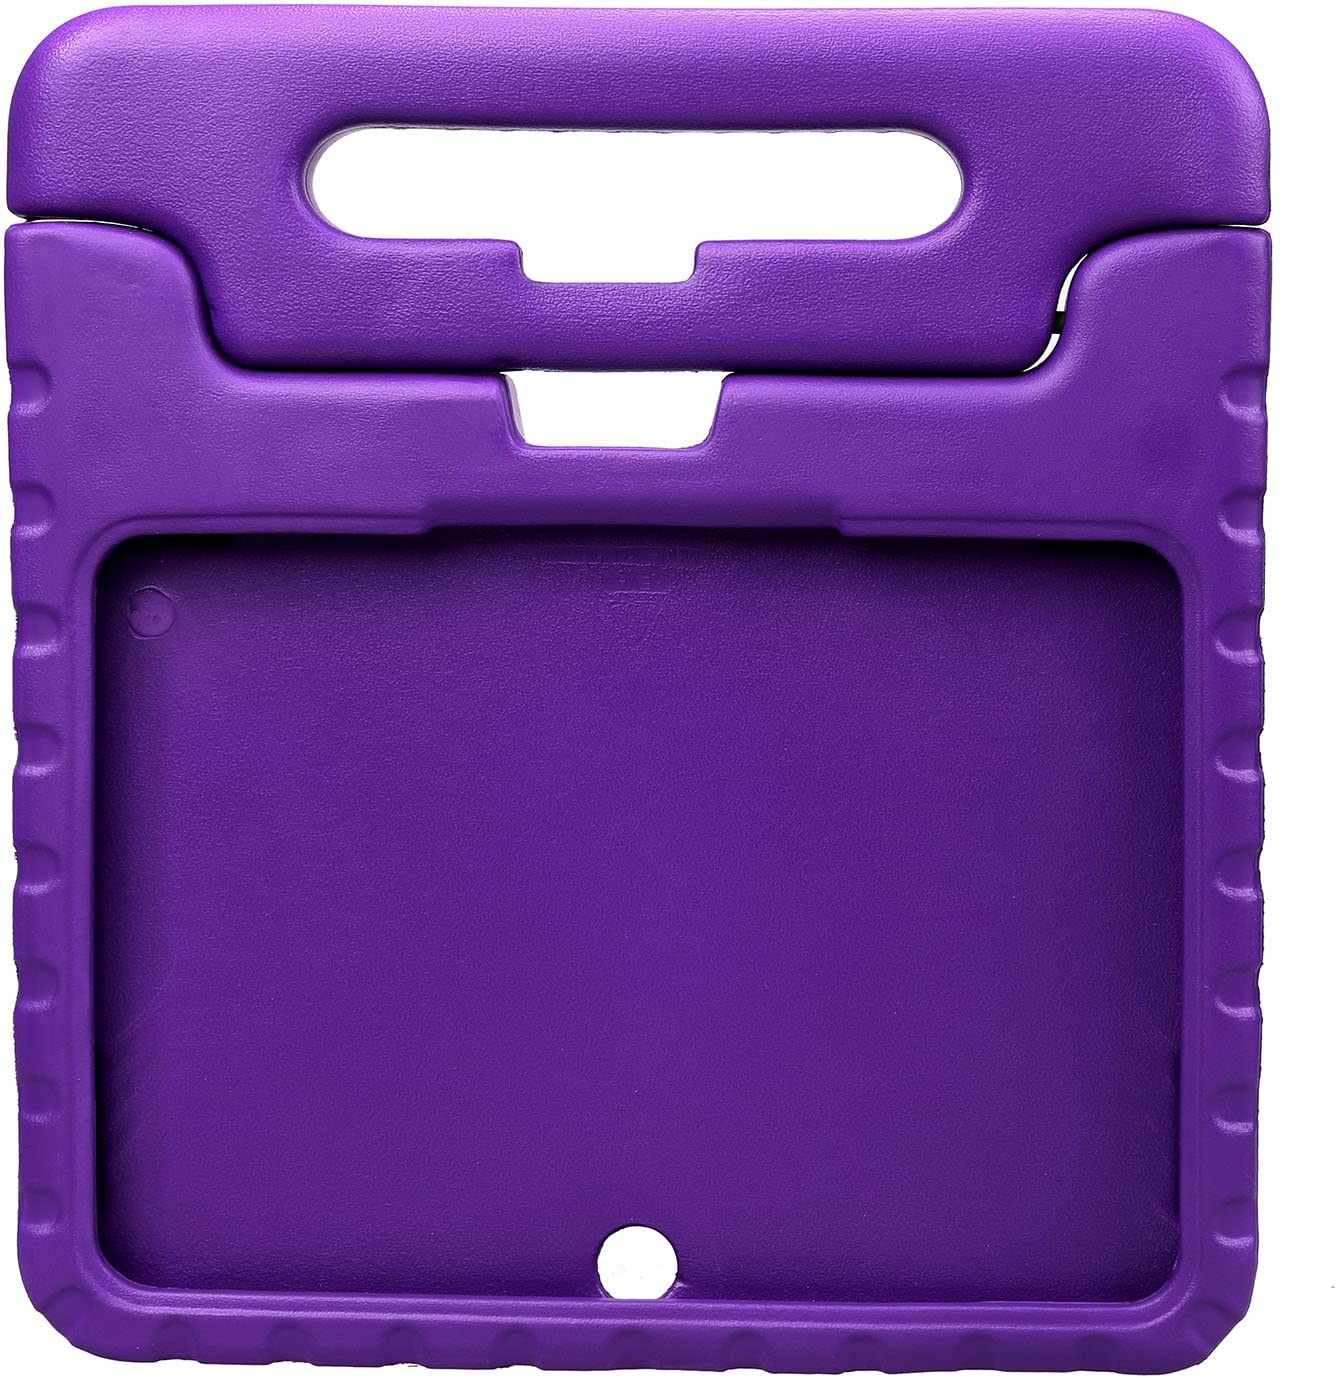 NEWSTYLE Tab 4 10.1 Shockproof Case Light Weight Kids Case Super Protection Cover Handle Stand Case for Kids Children for Samsung Galaxy Tab 4 10.1-inch & Tab 3 10.1 SM-T530 SM-T531 SM-T535 (Purple)